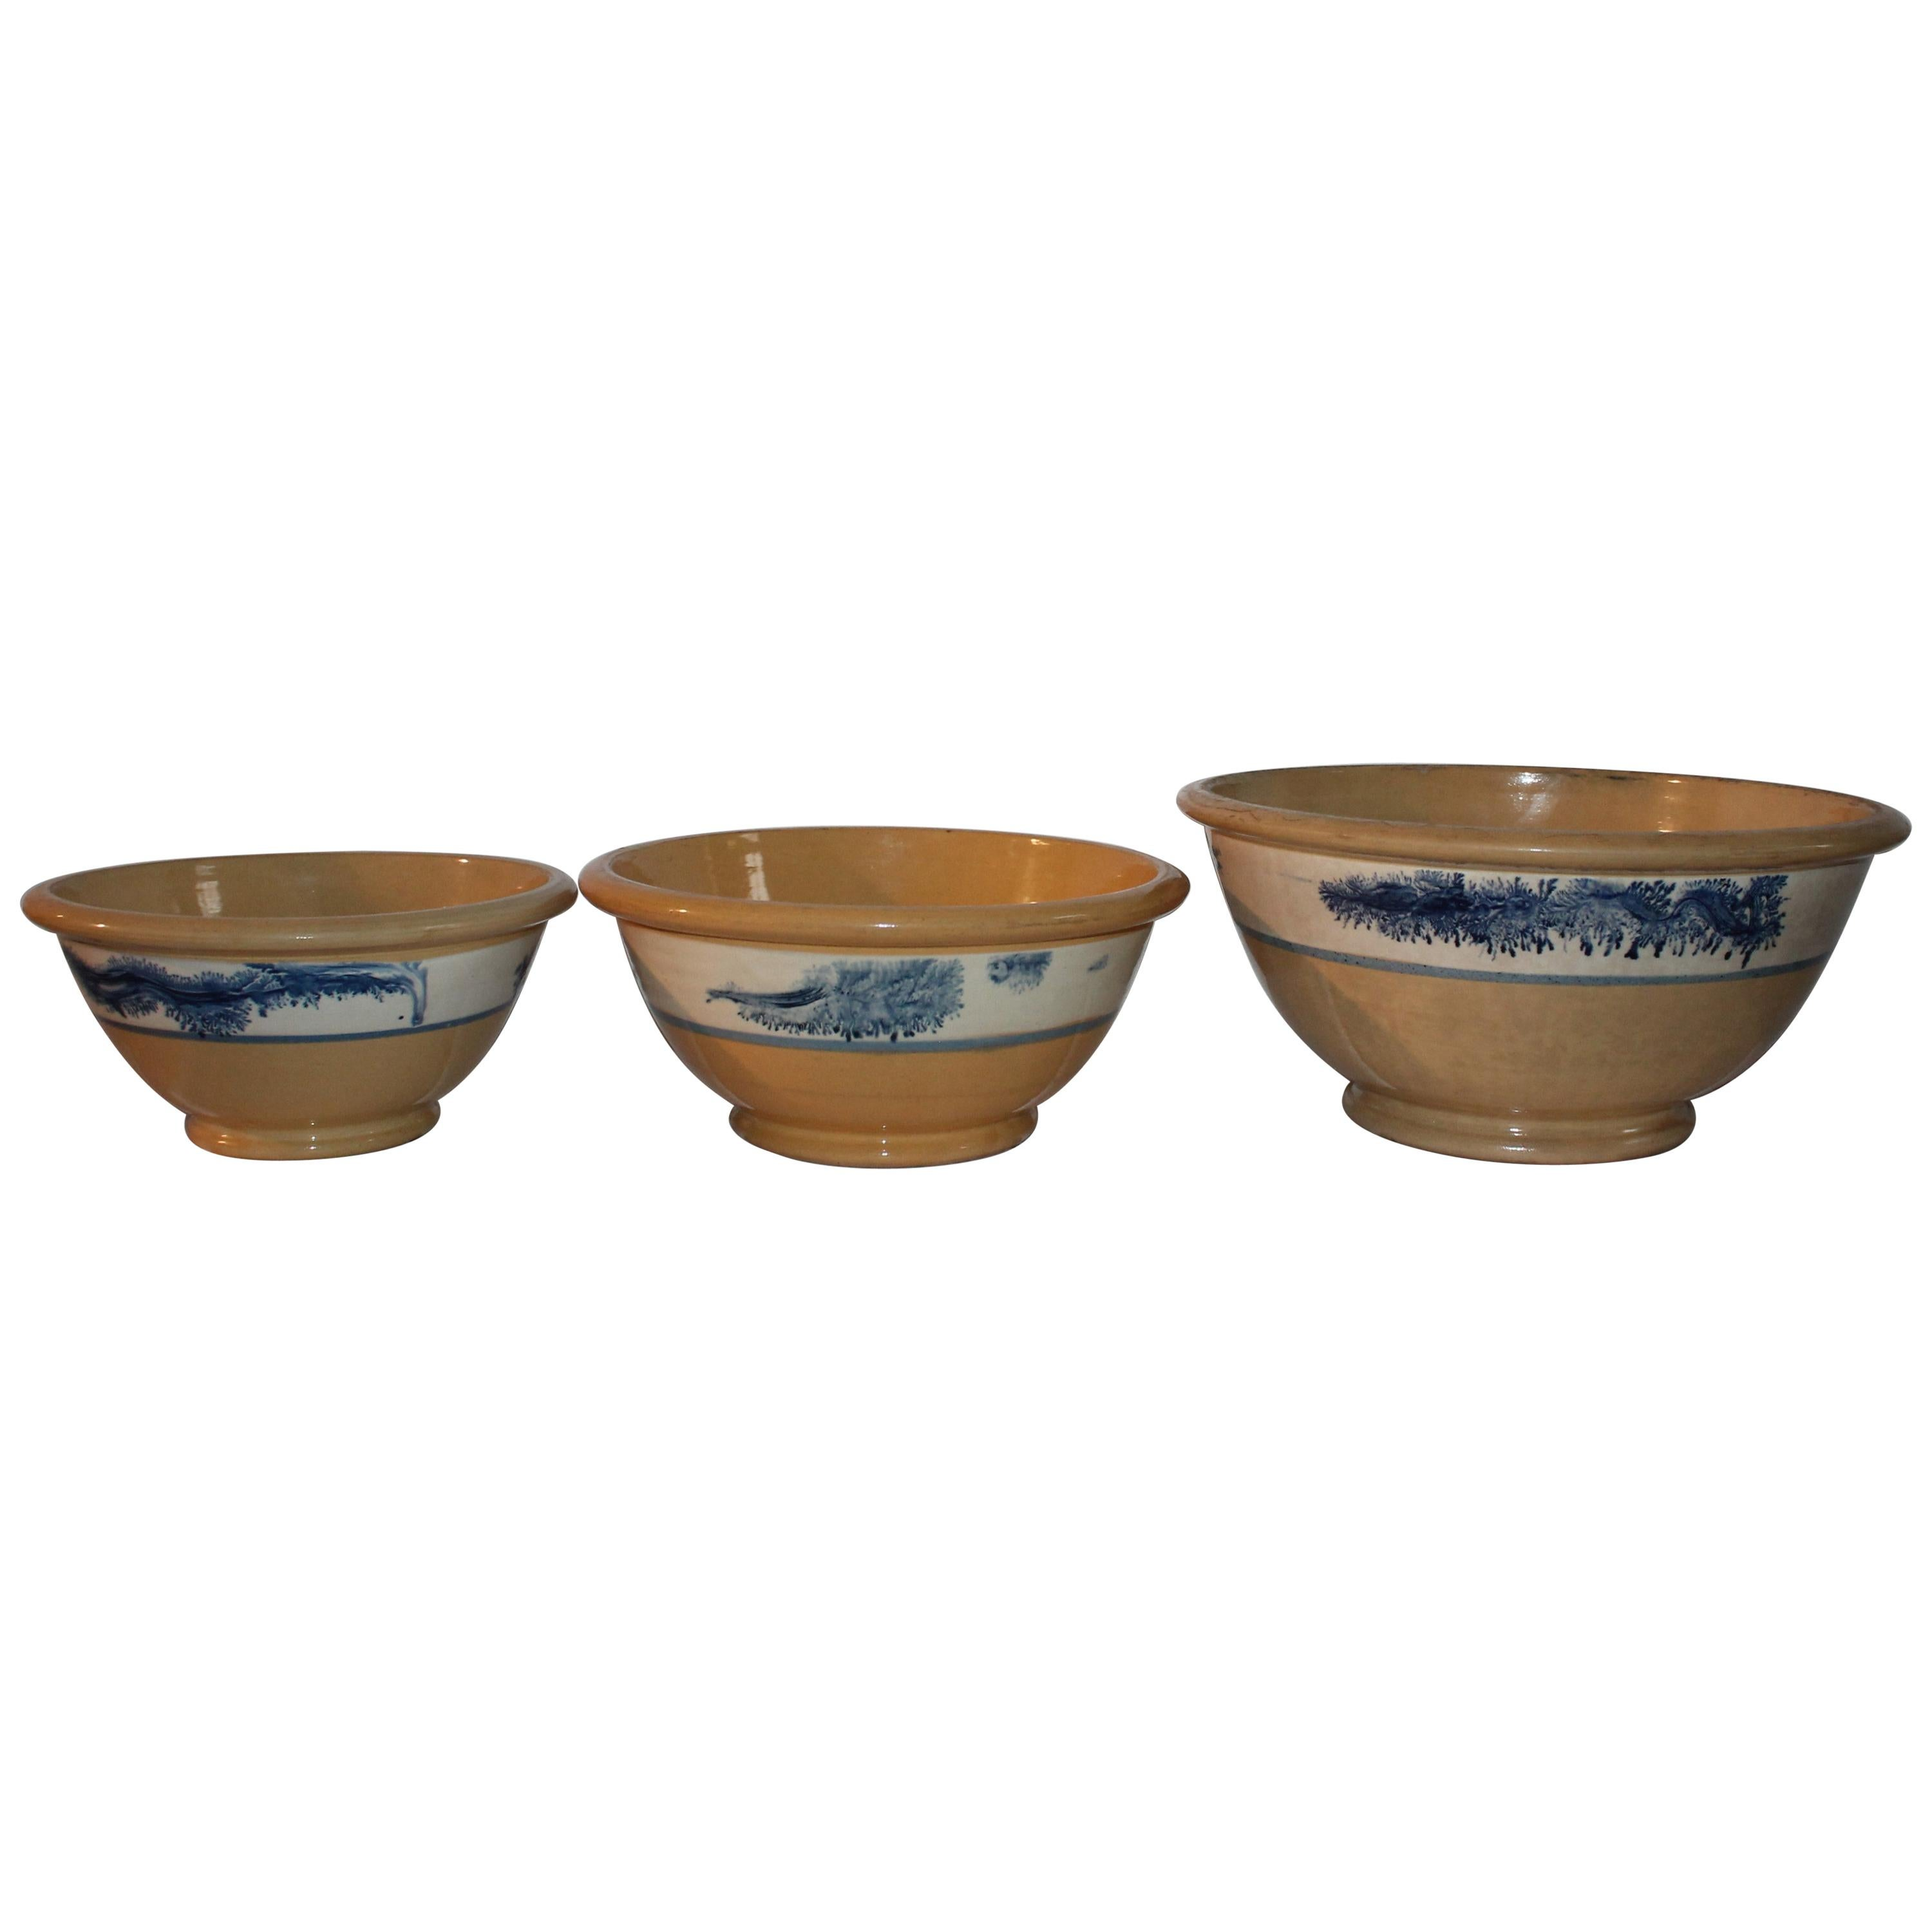 Collection of Three 19th Century Mocha Yellow Ware Bowls